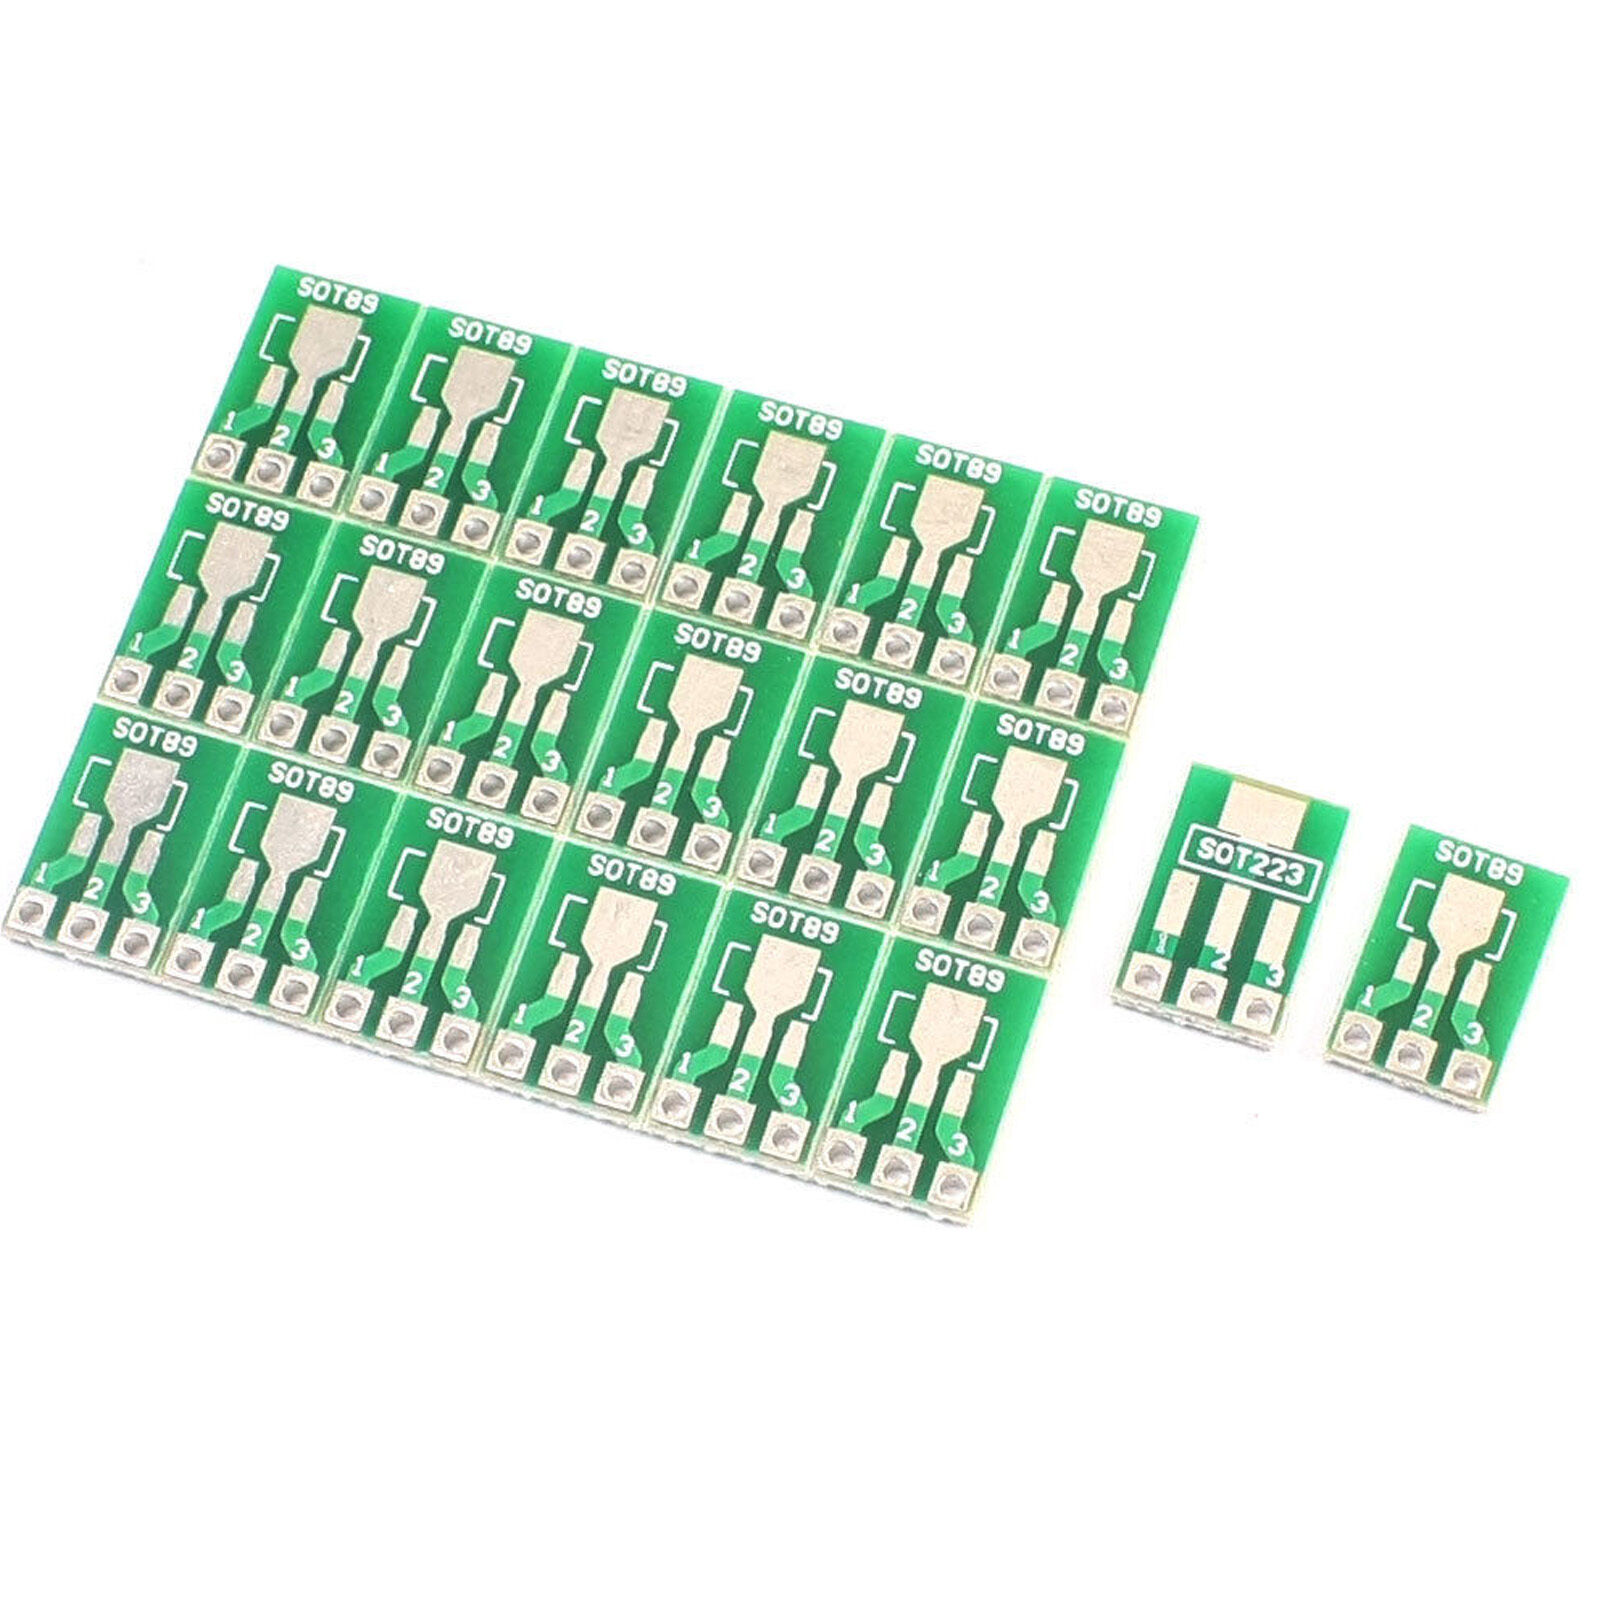 20pcs Dual Side Smd Smt Sot223 Sot89 To Dip Sip3 Adapter Pcb Board Diy Sot 23 1 Of 1free Shipping